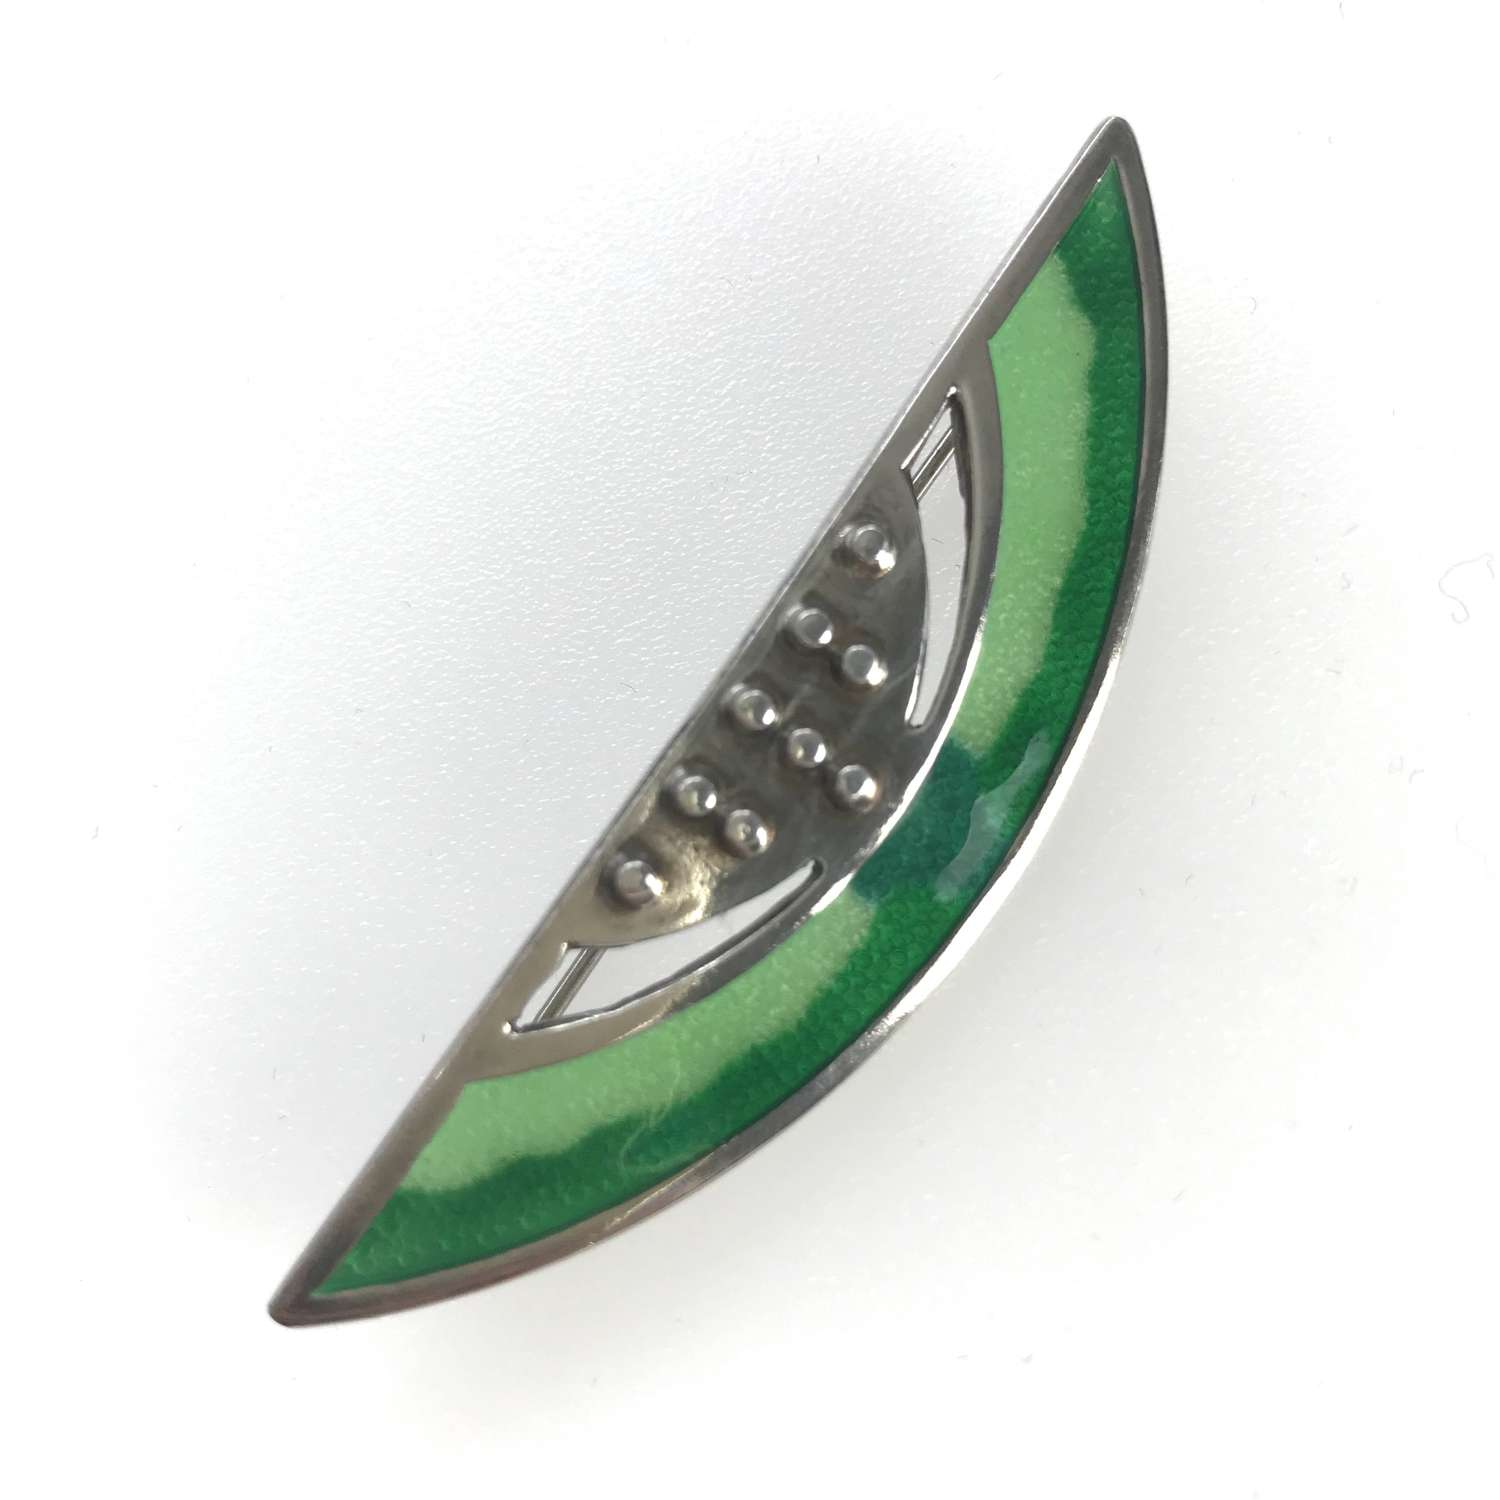 Green enamel and silver brooch by Embla, Norway 1960s-70s